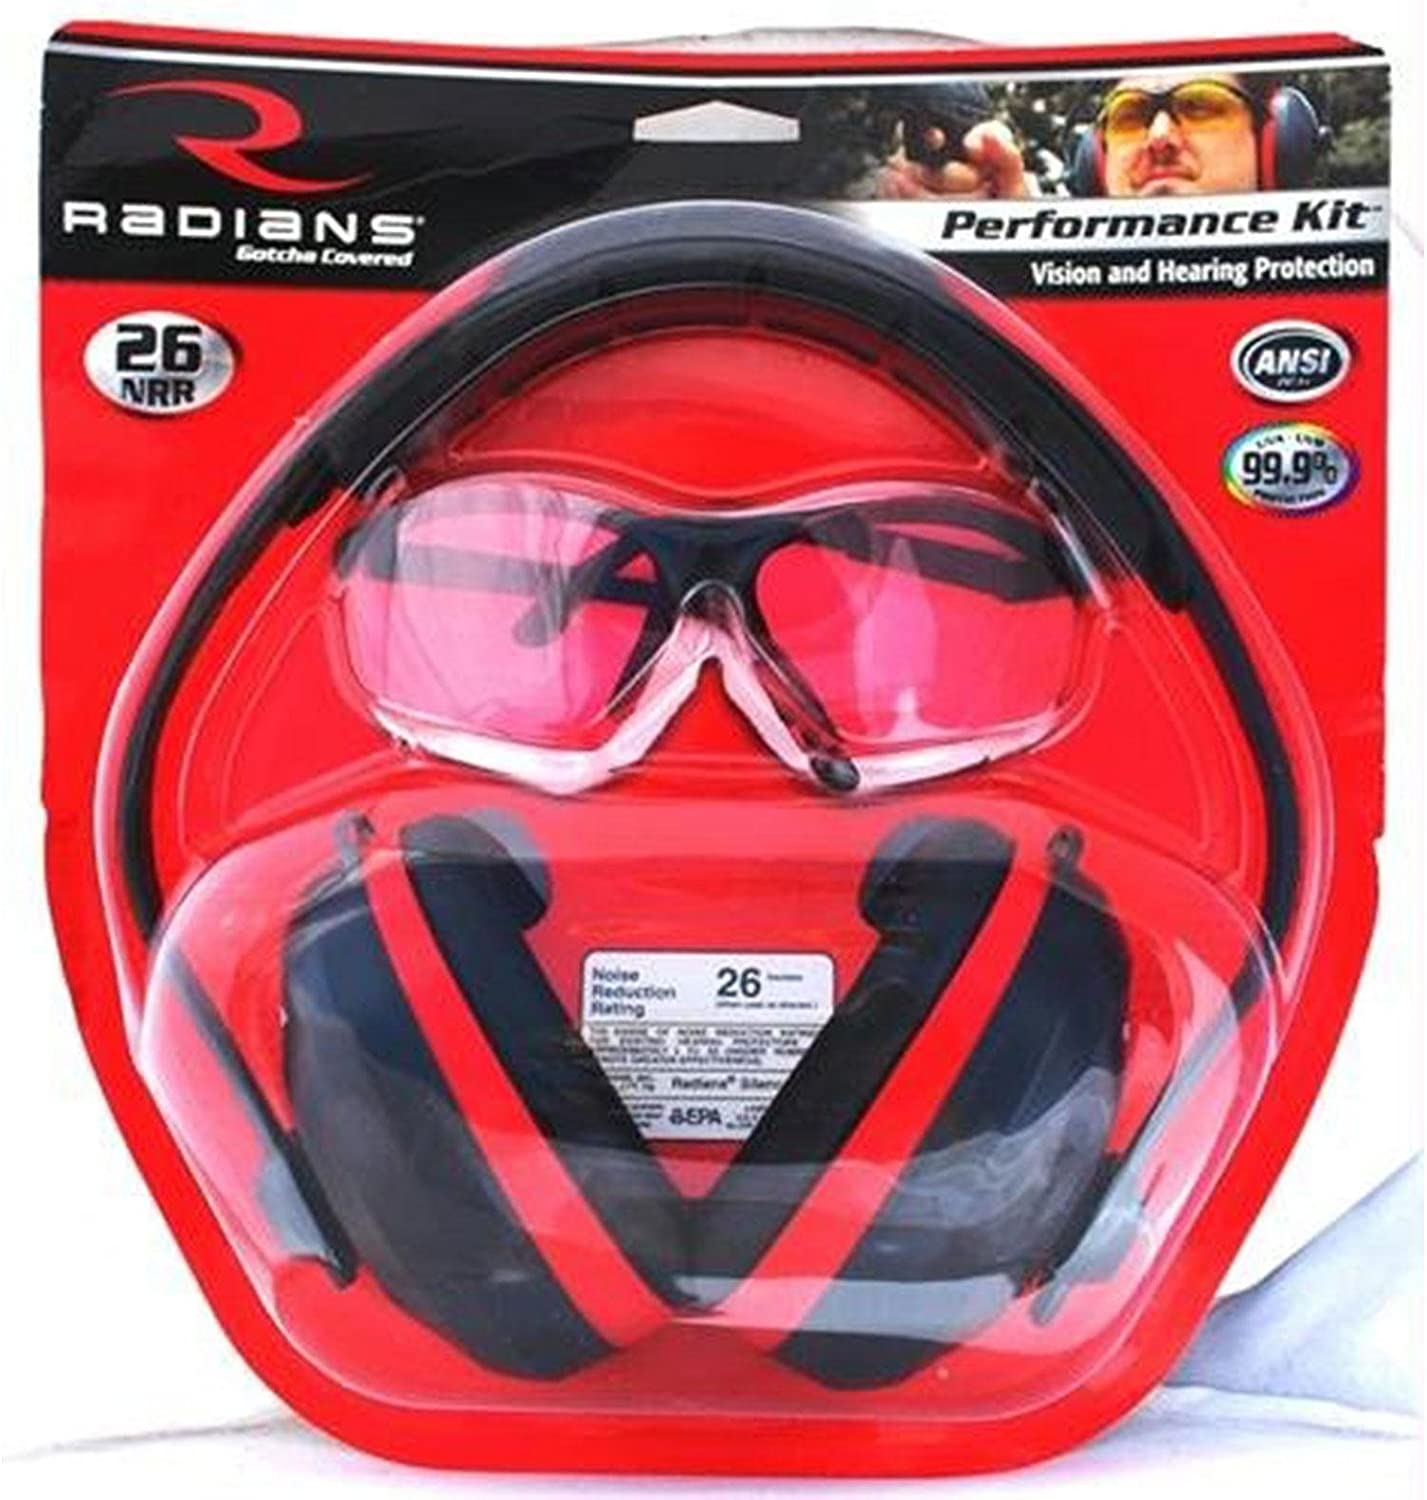 Radians Performance Kit with Silencer Ear Muff and Revelation Shooting Glasses